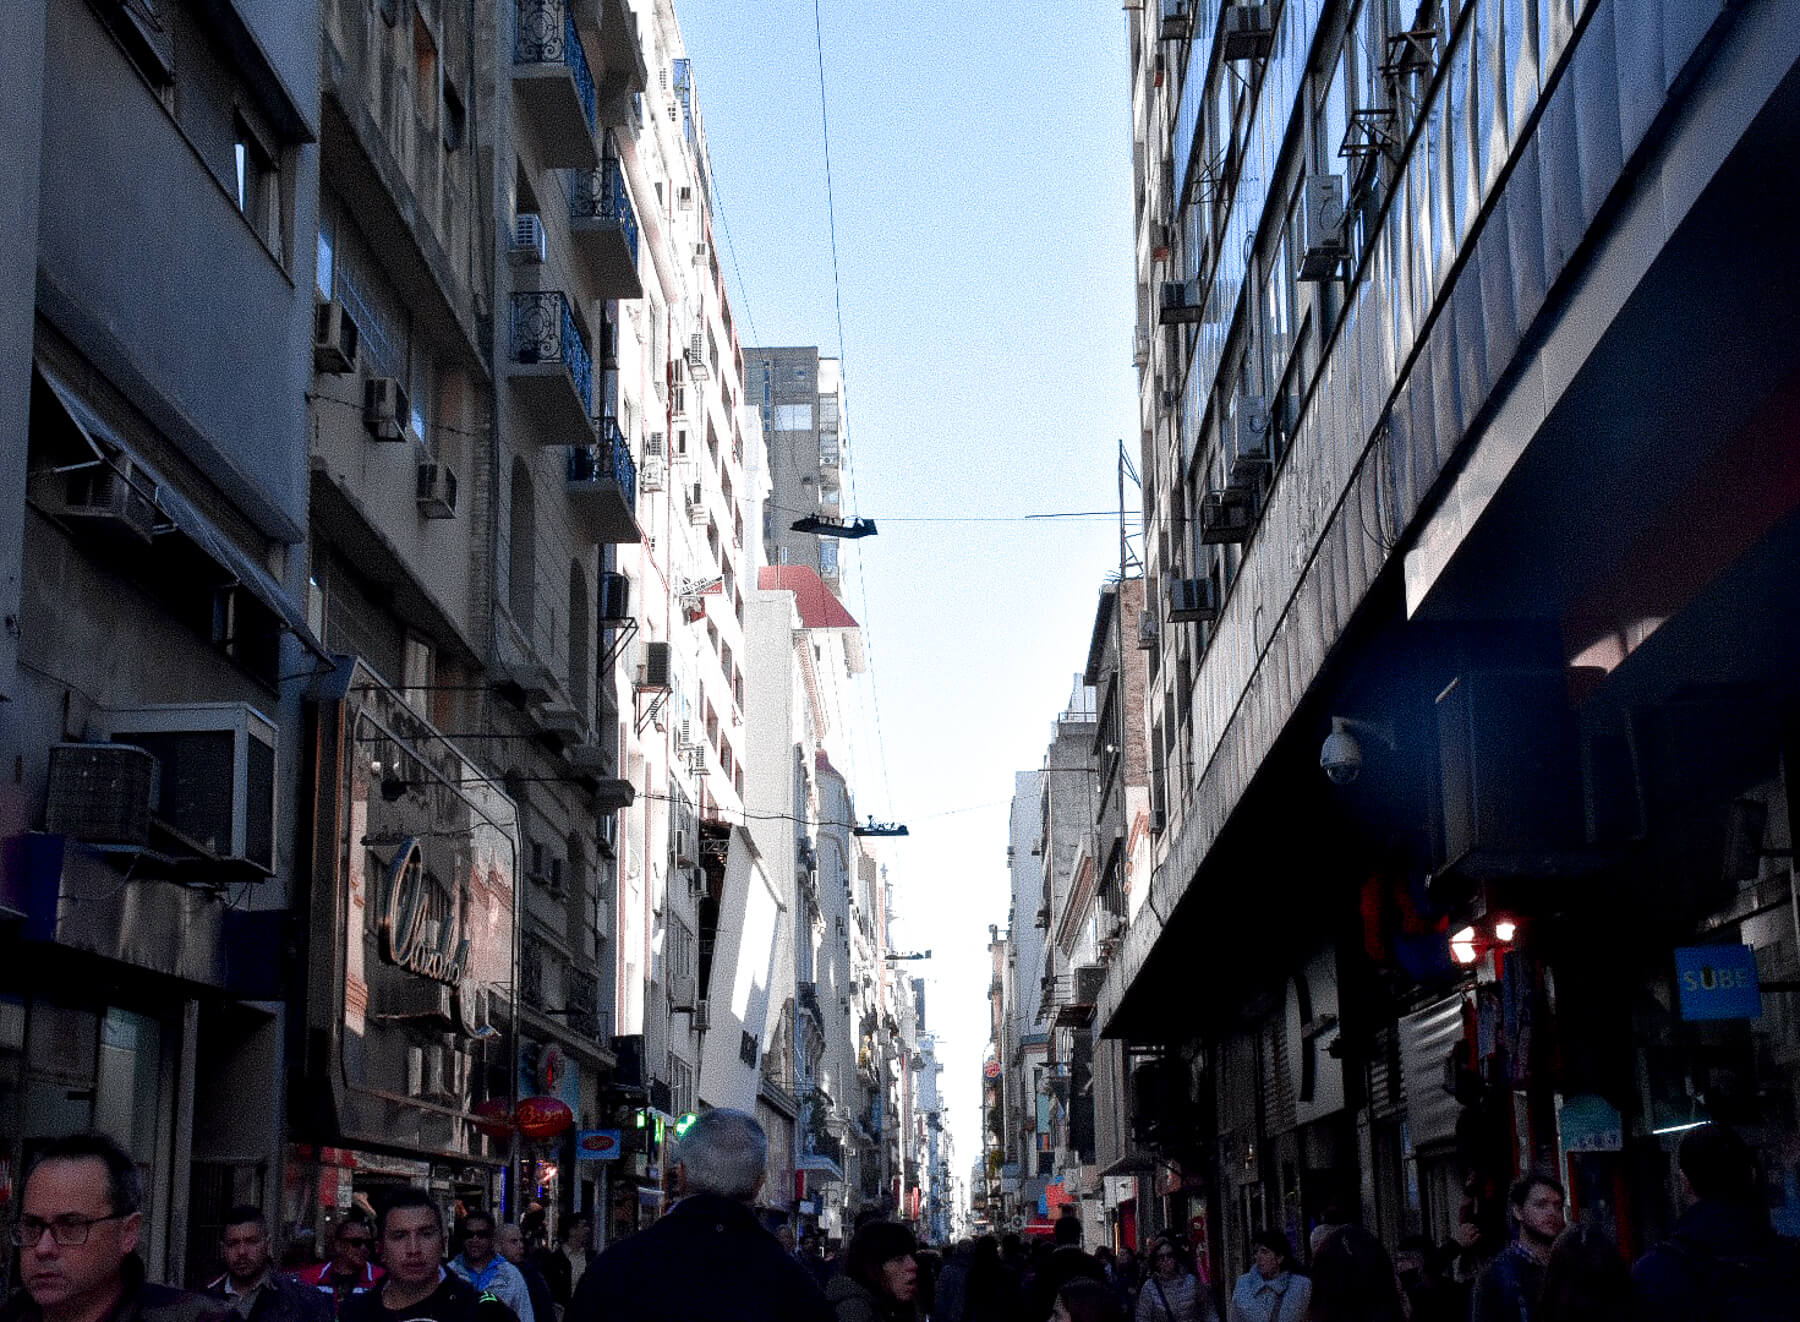 Looking down the road of a busy street in Buenos Aires with lots of people walking